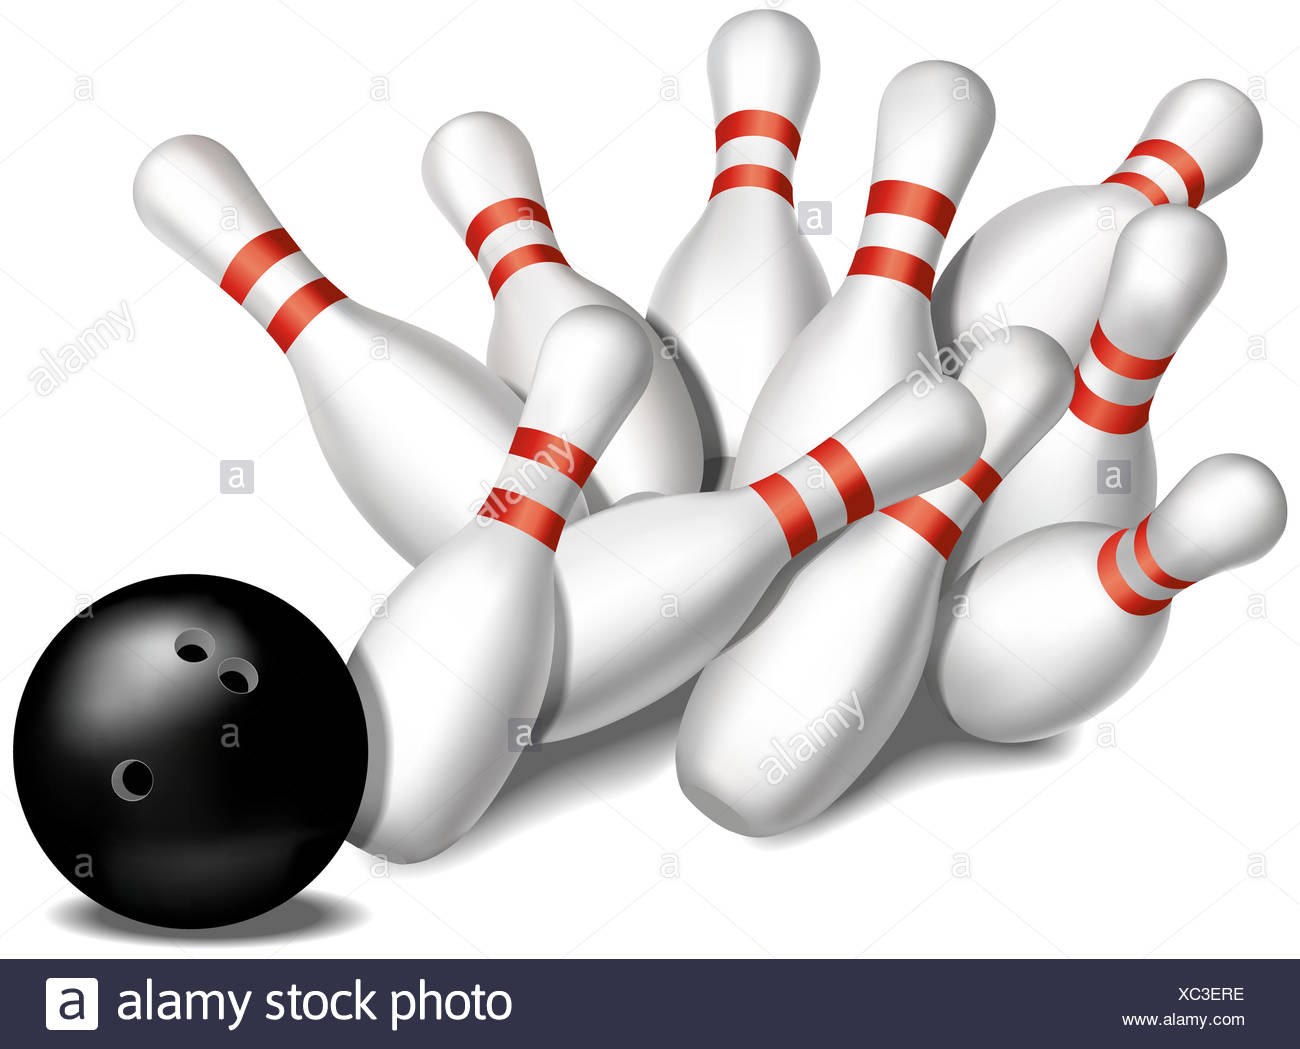 bowling pins being knocked